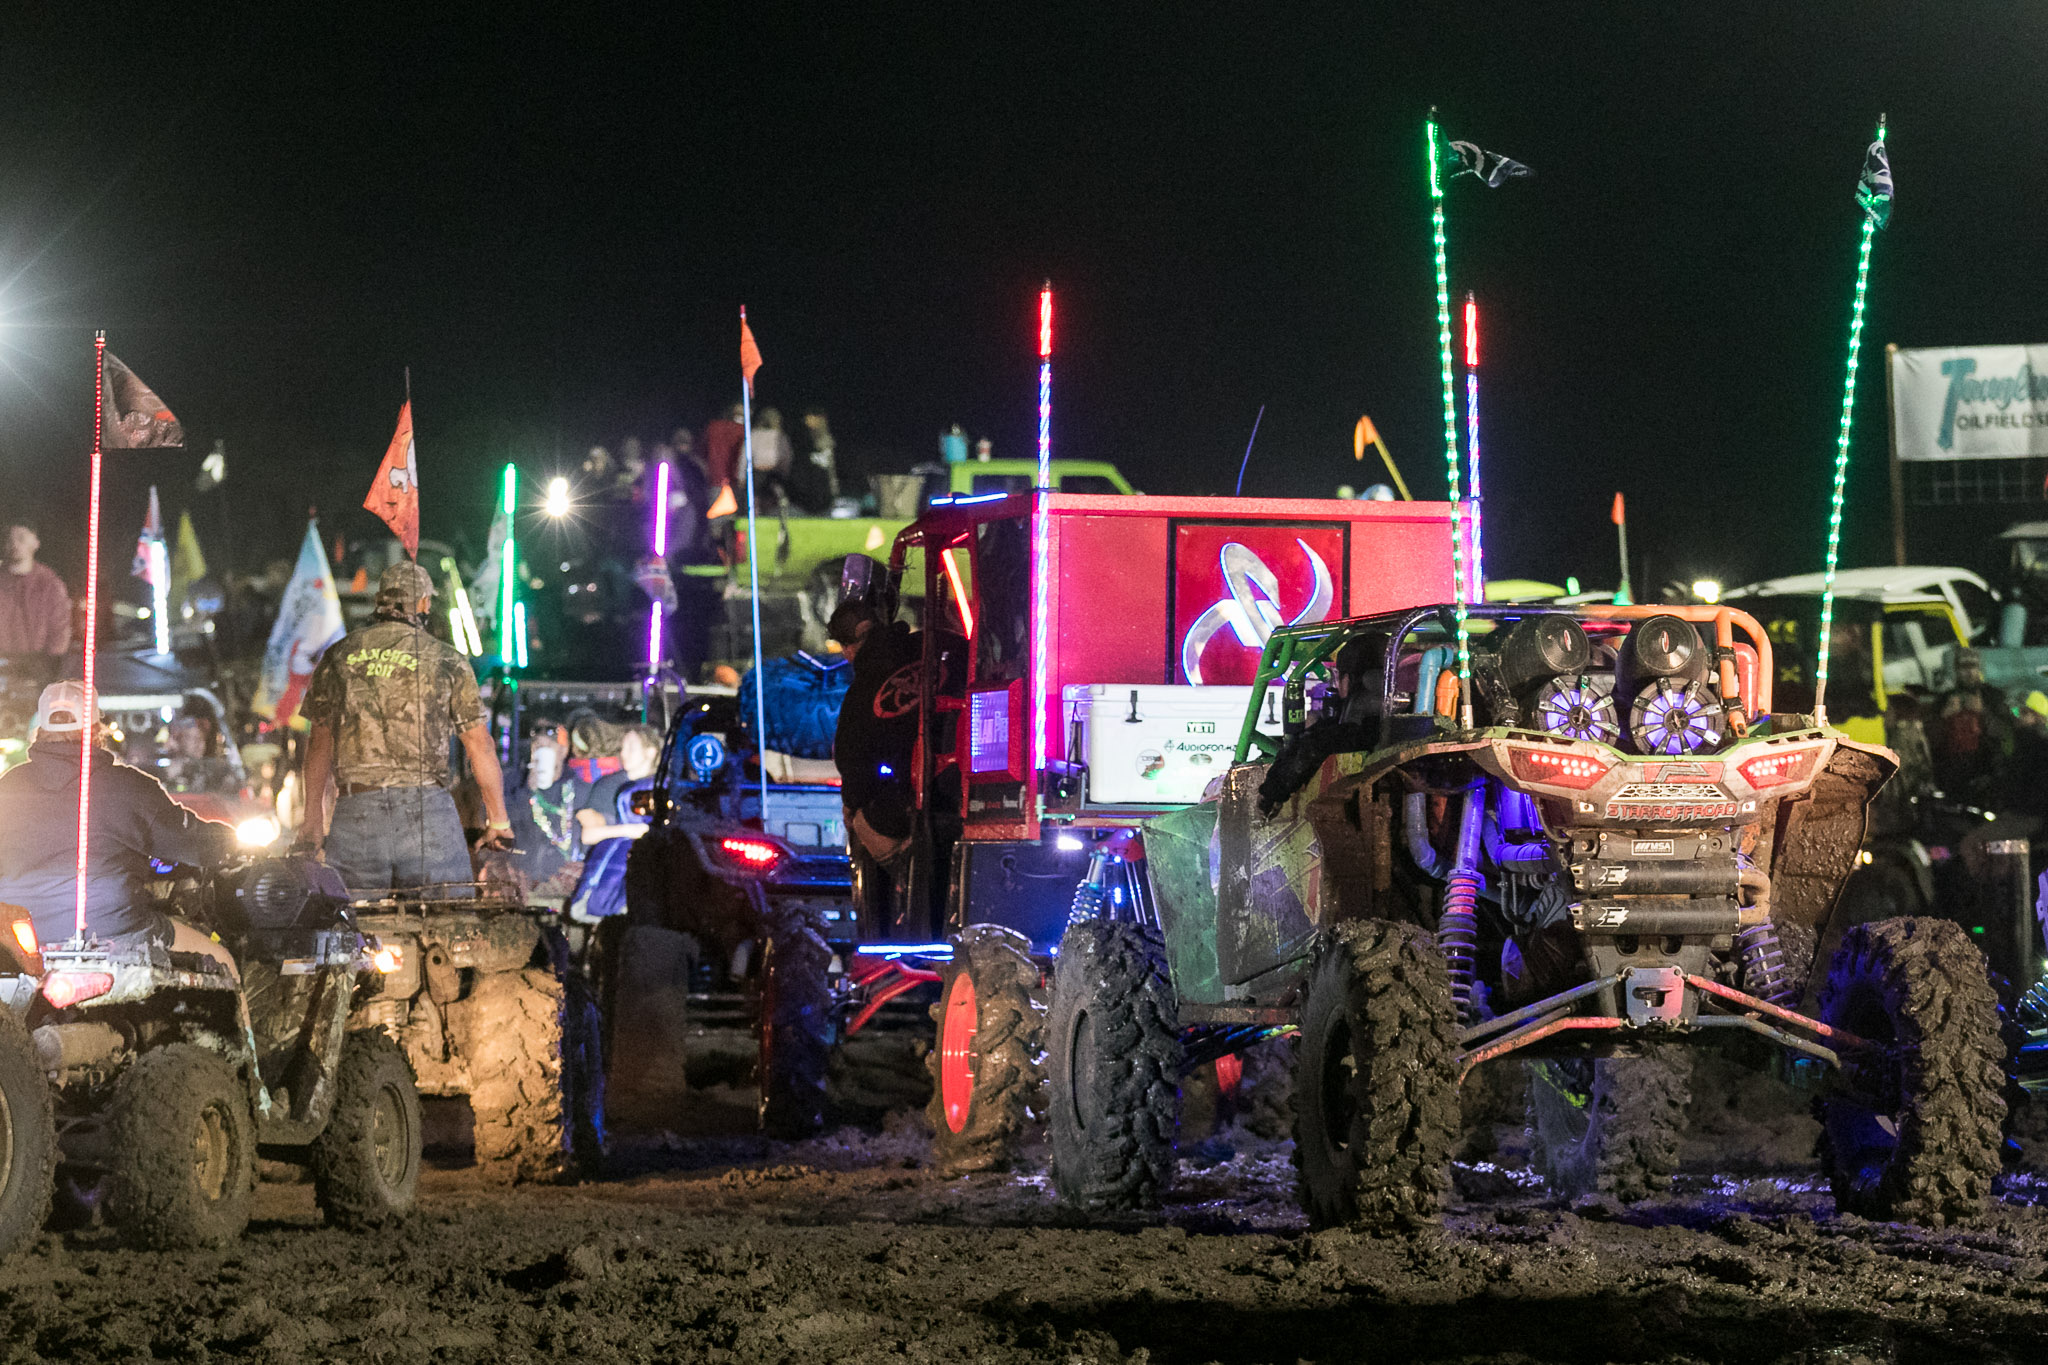 Monster trucks at night